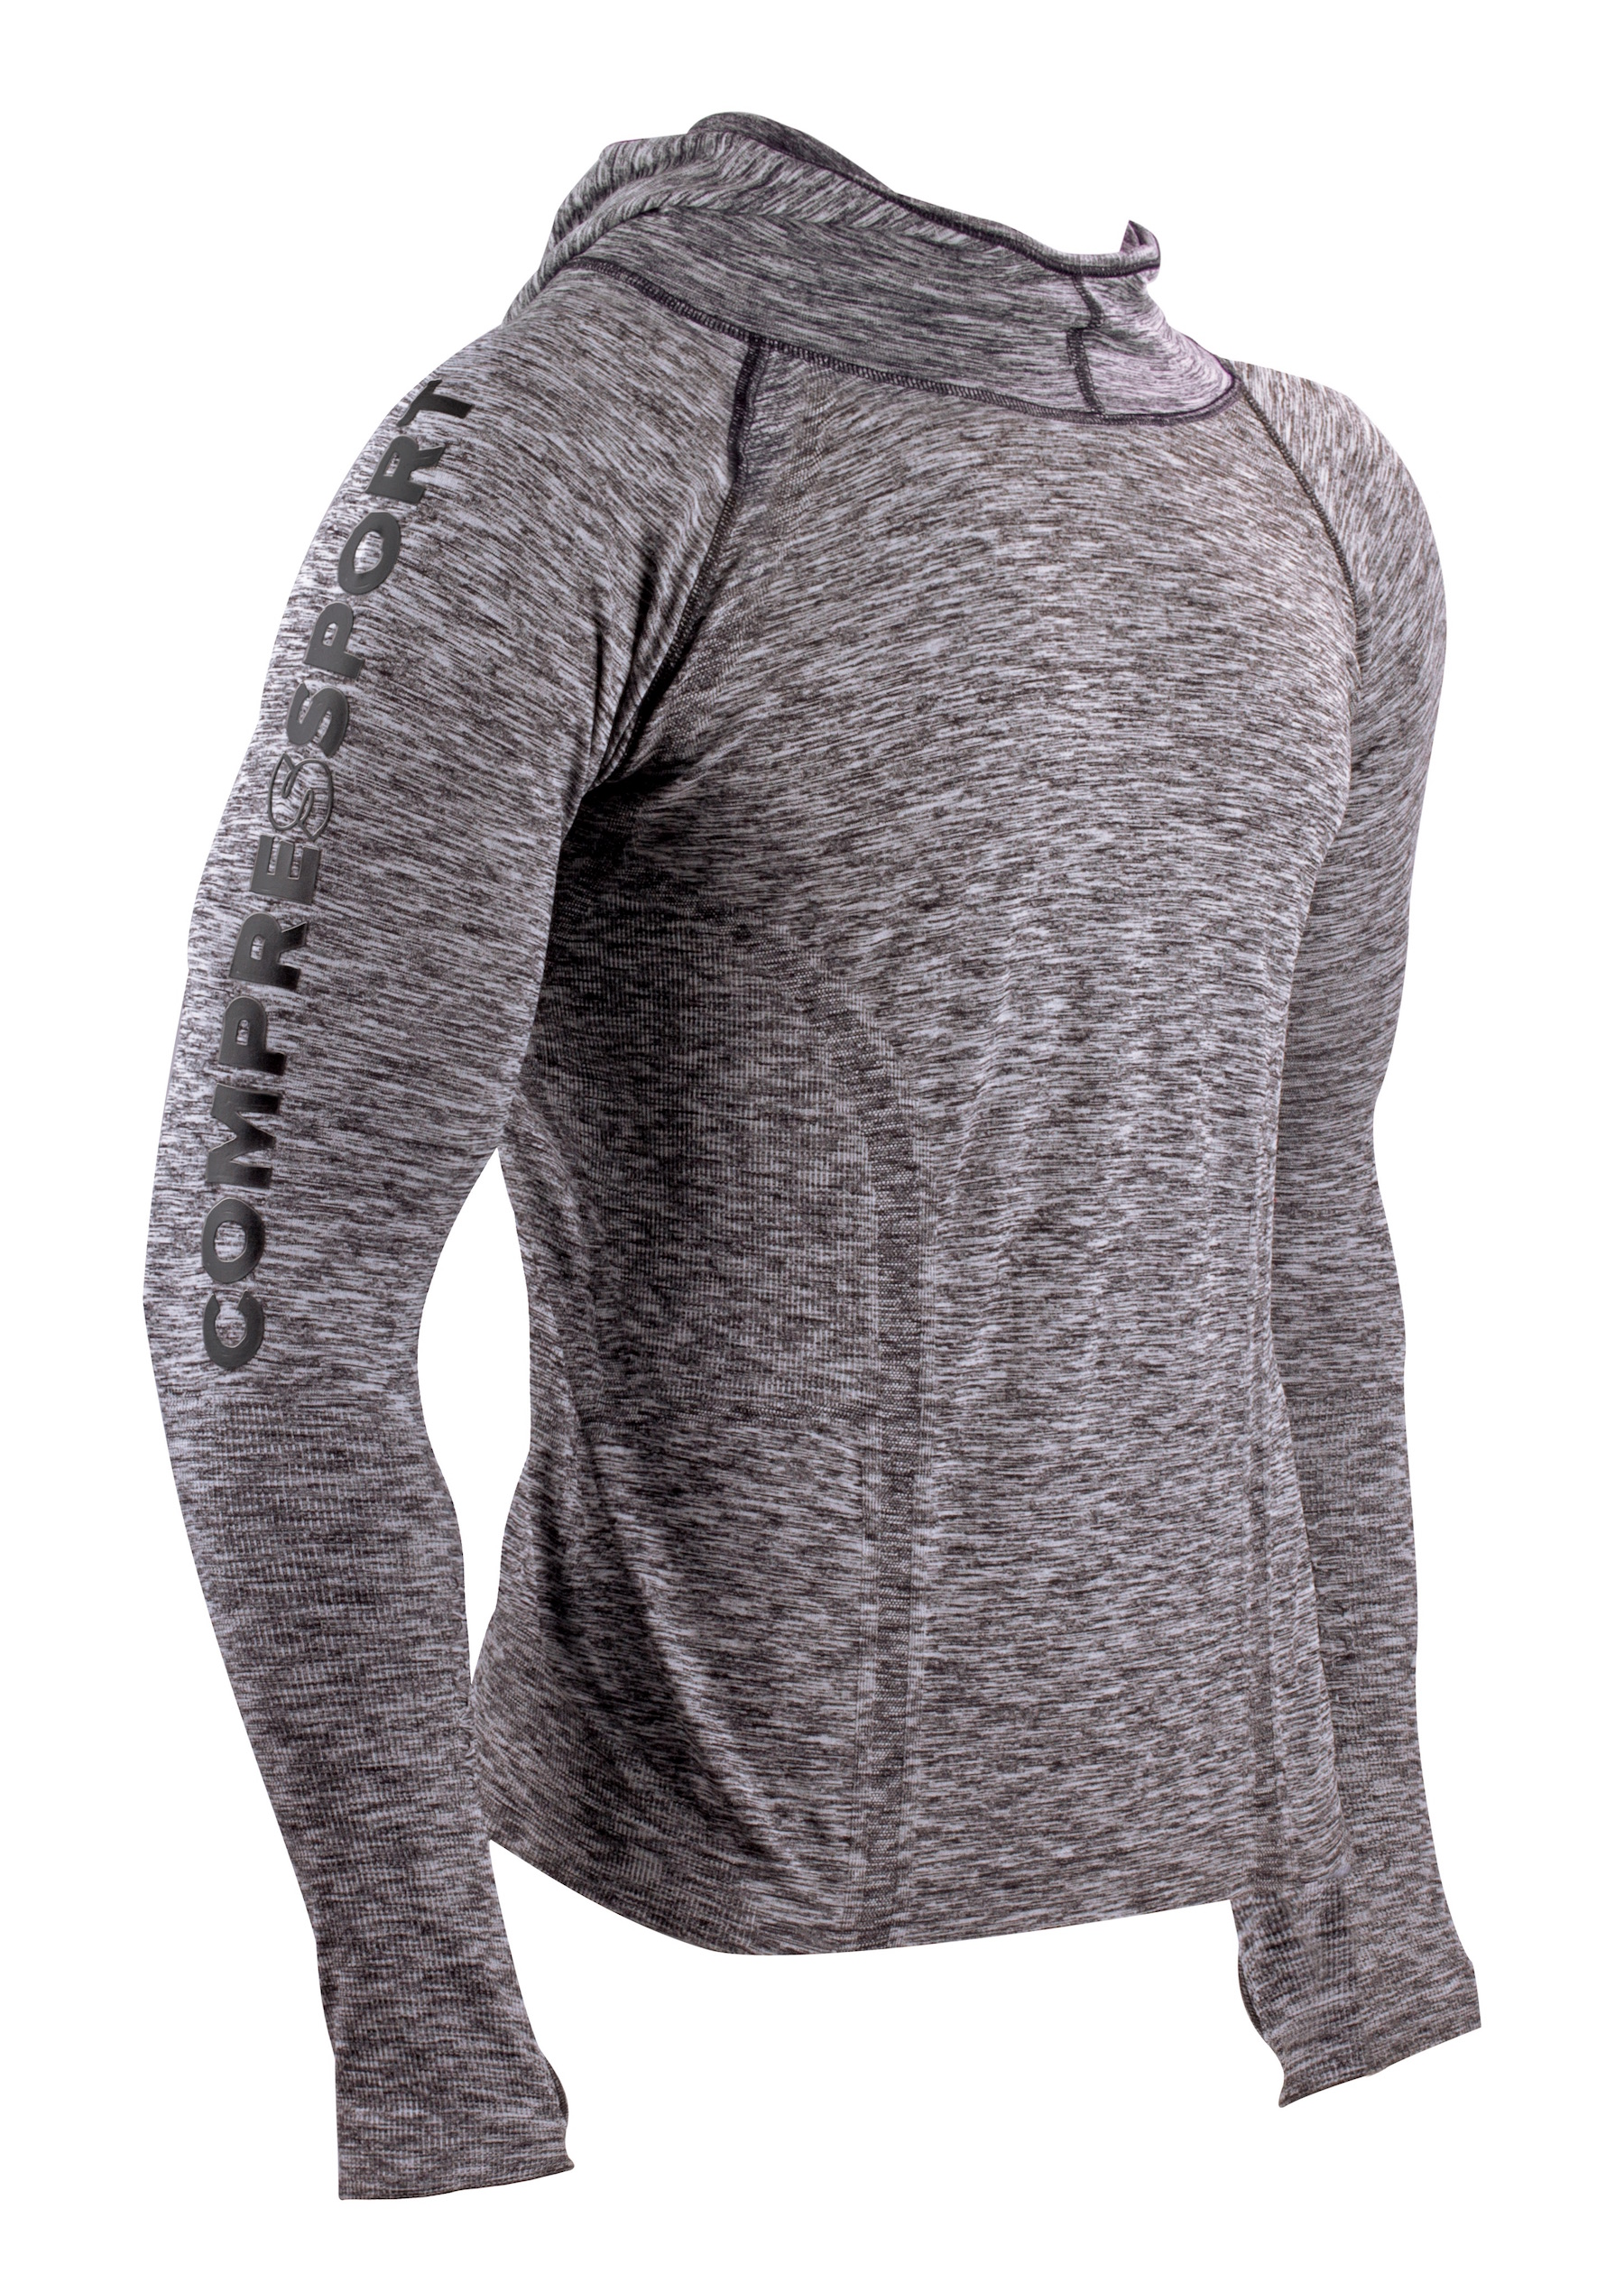 Compressport - 3D Thermo Seamless Hoodie - Base layer - Men's